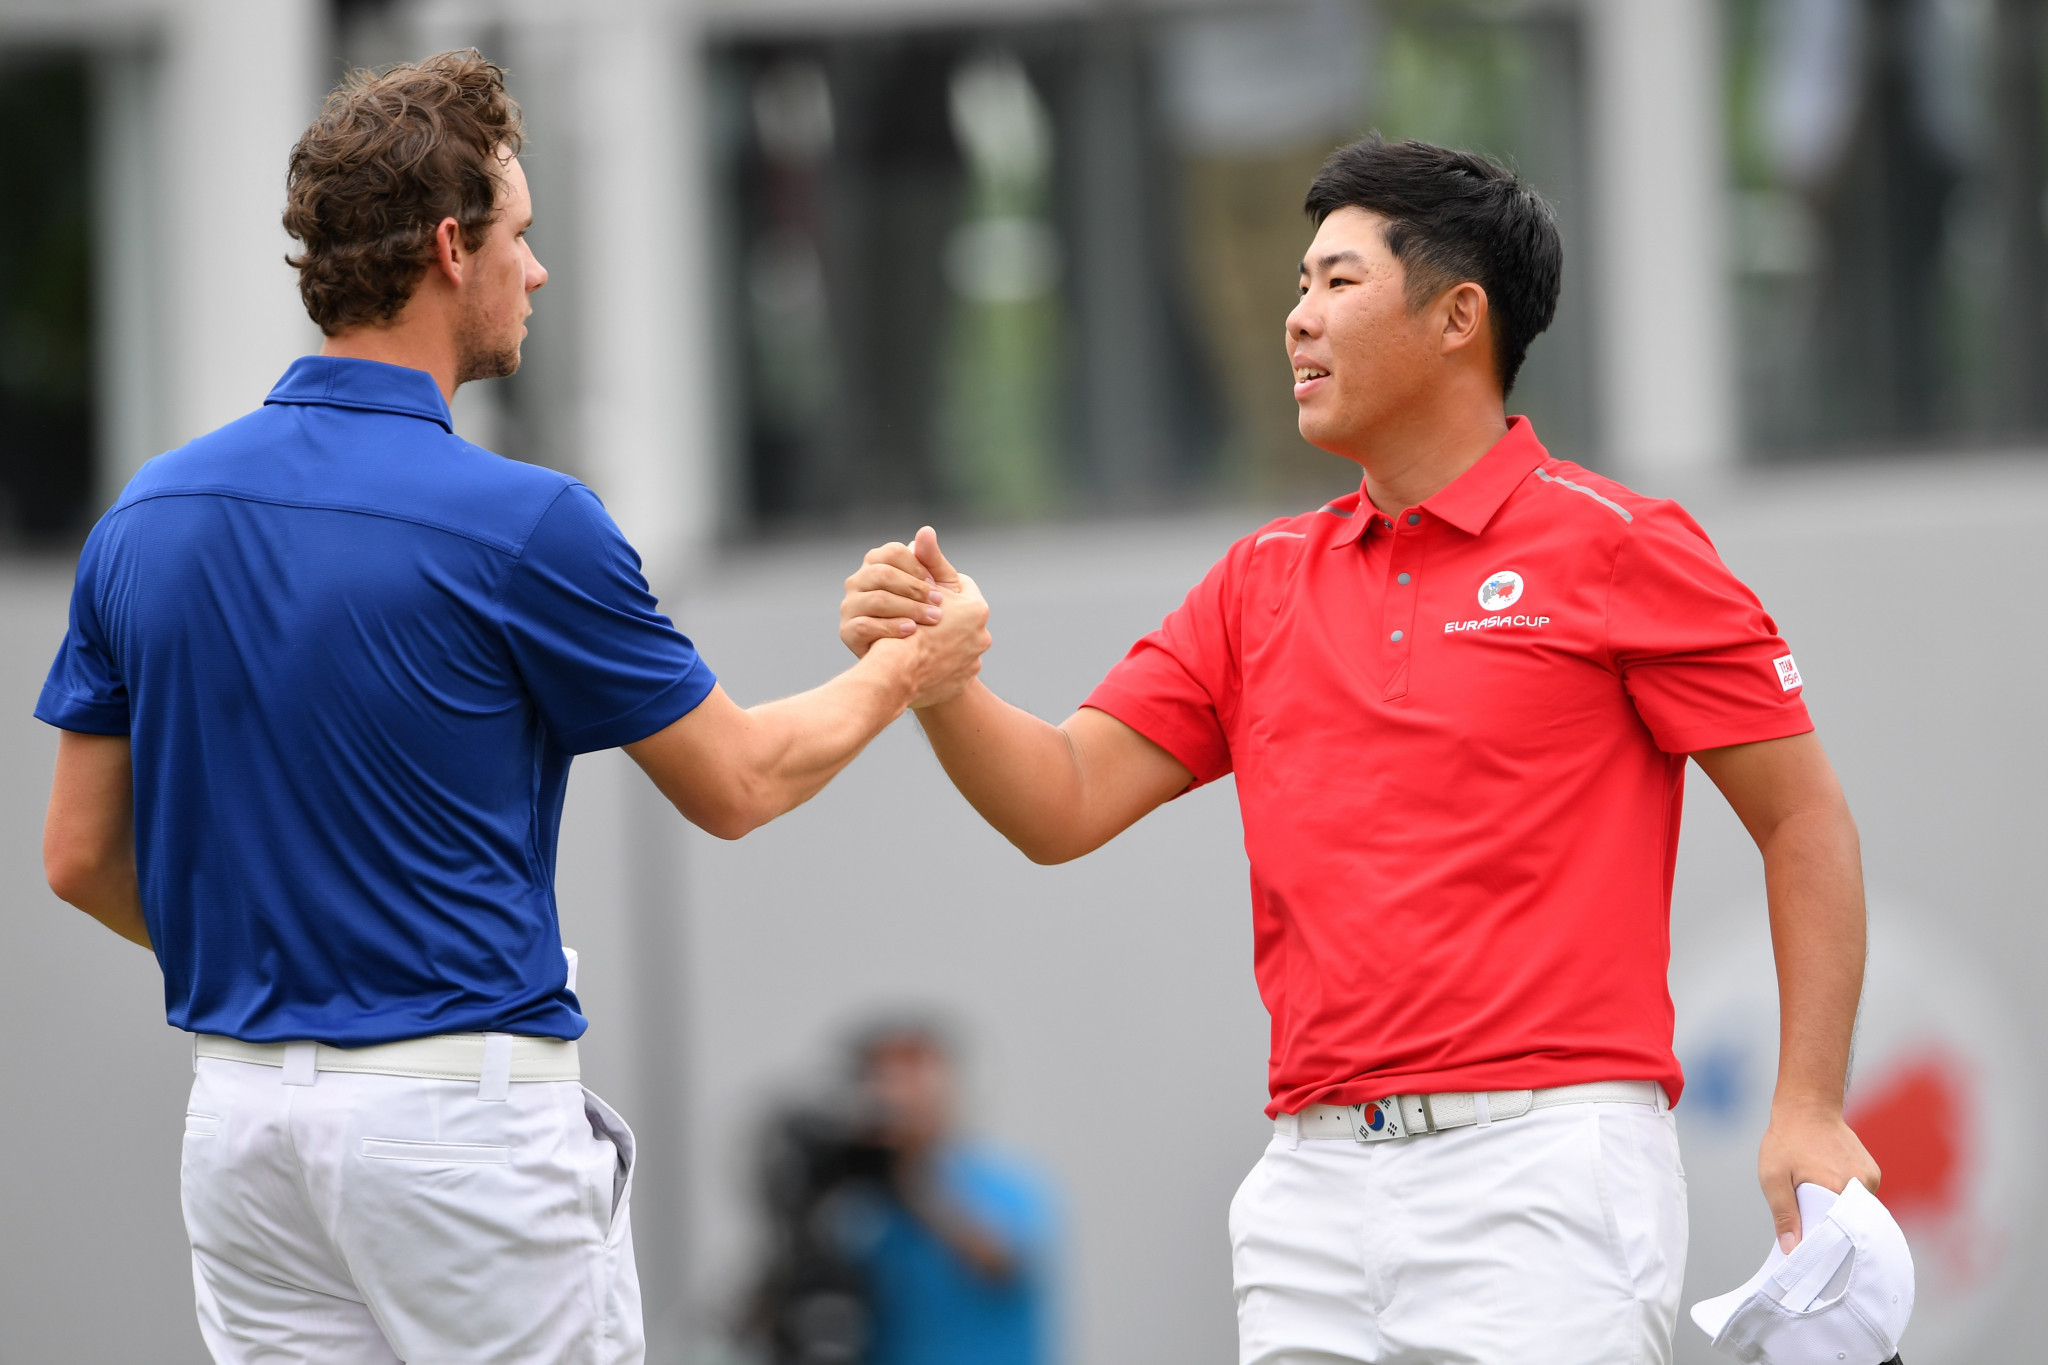 Belgium's Thomas Pieters scored the winning point by beating South Korea's Byeong Hun An by one hole